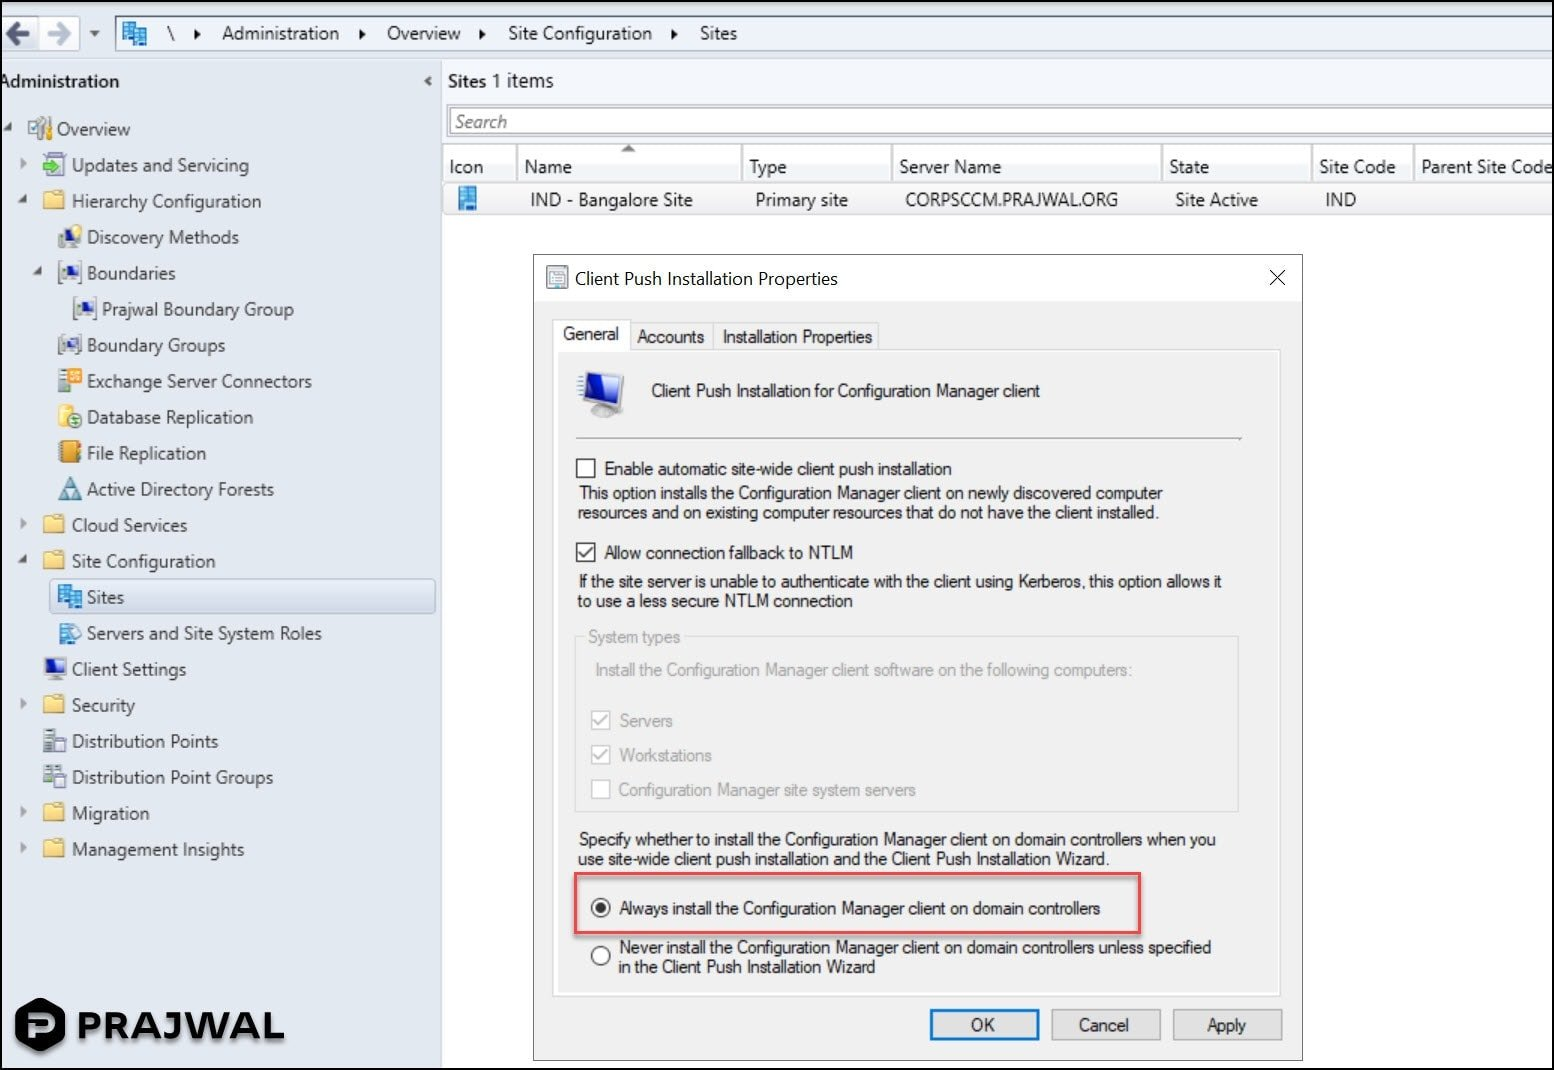 Always install the Configuration Manager client on domain controllers